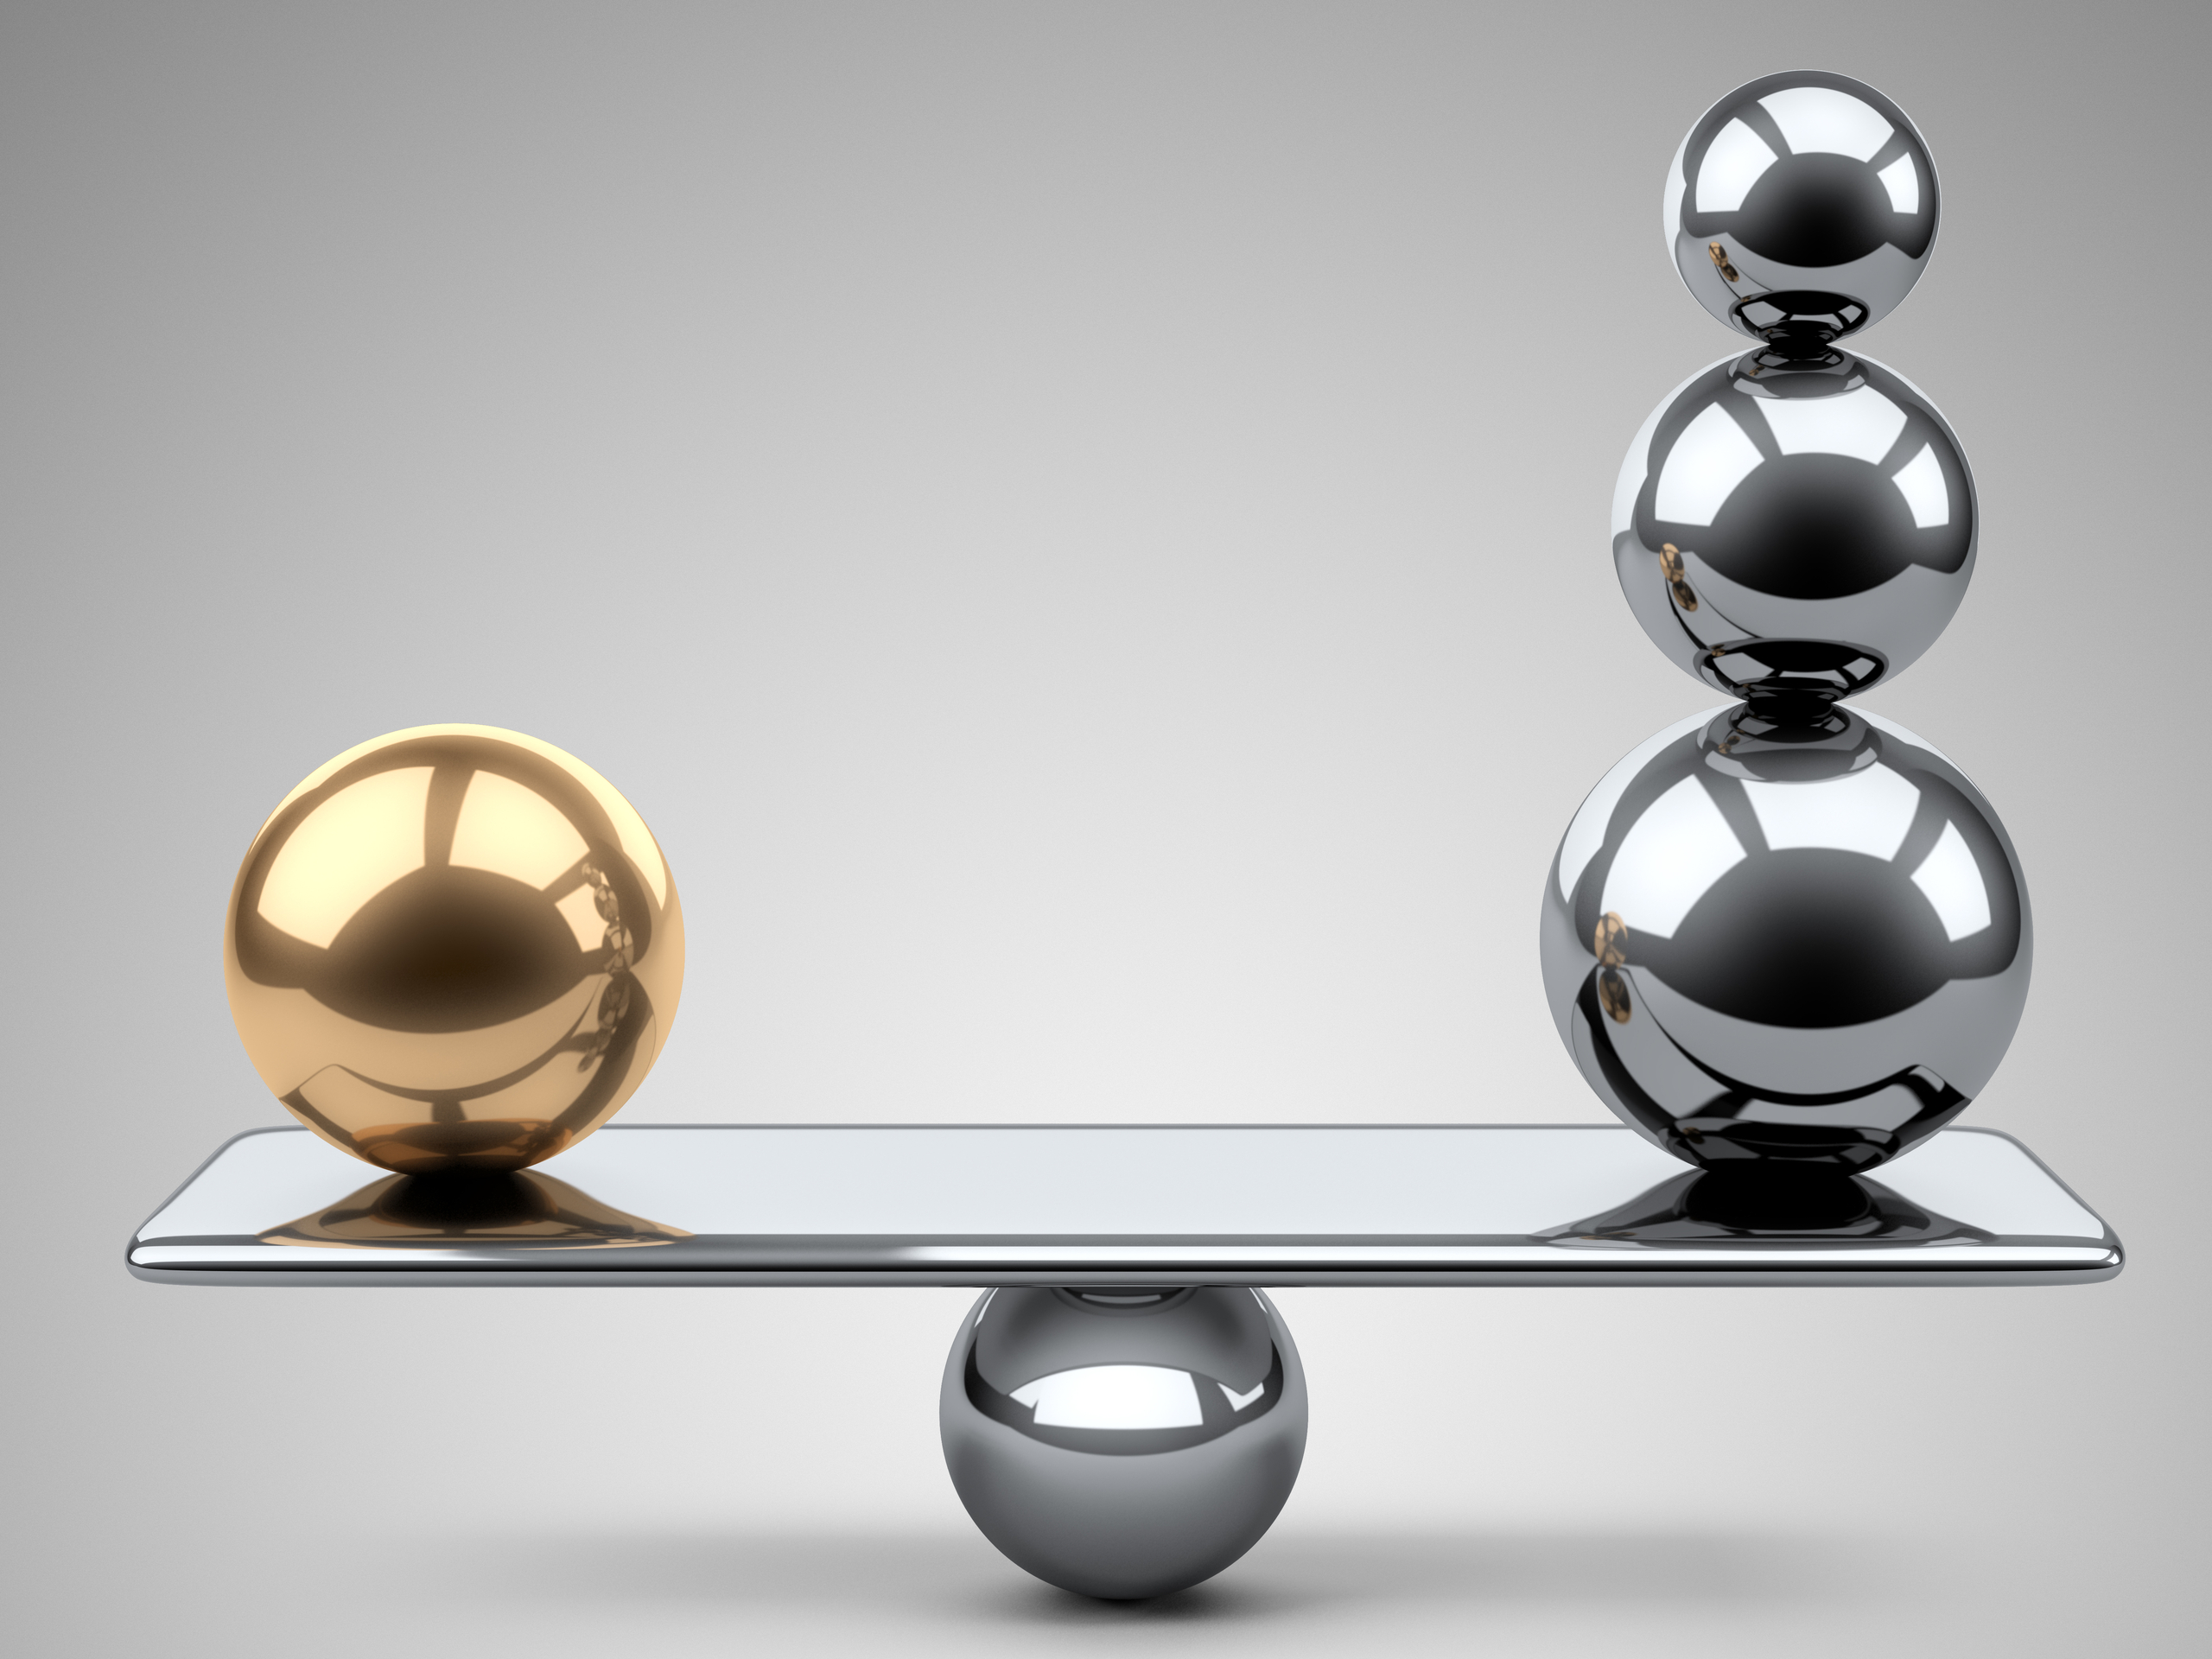 Balance with gold and silver balls